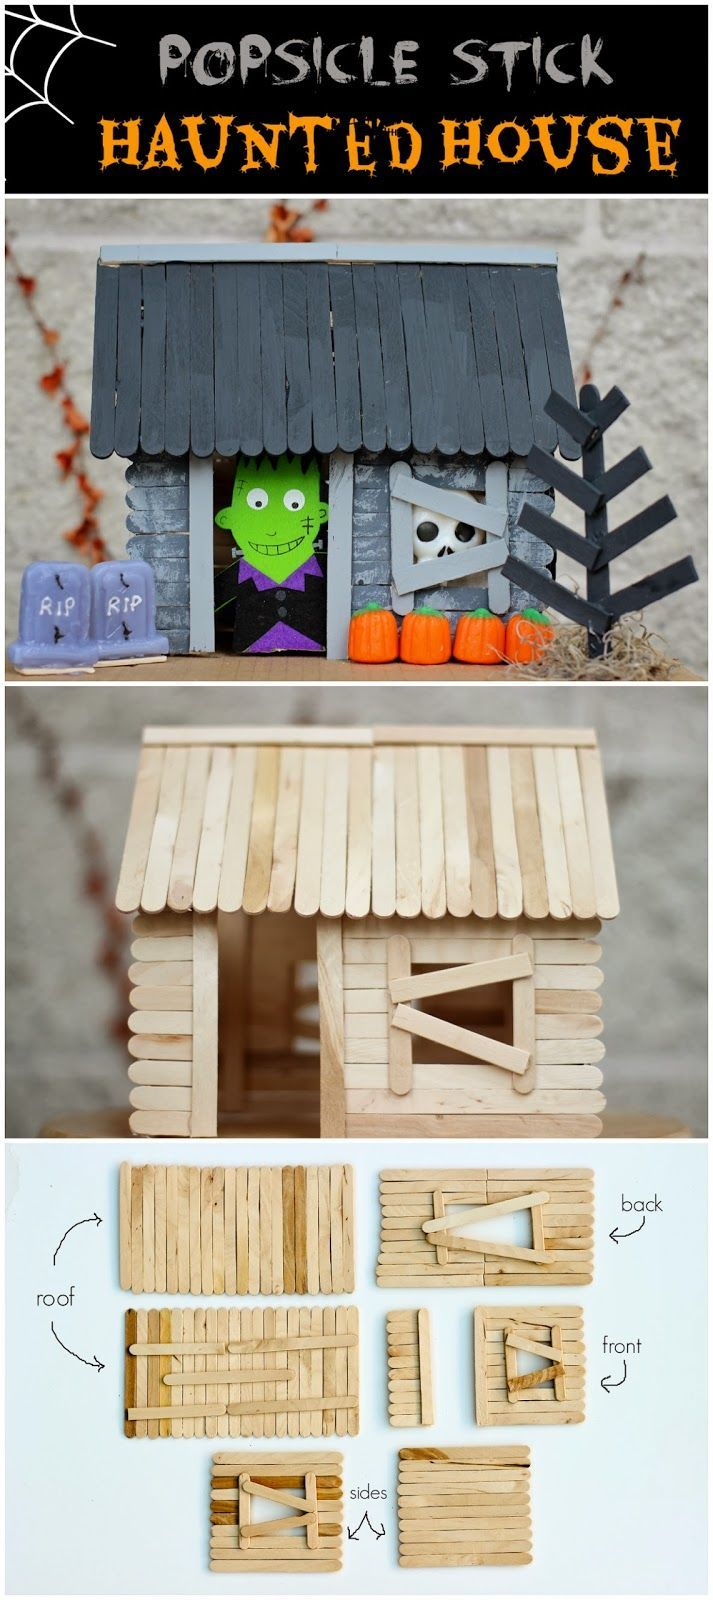 How To Make A Popsicle Stick Haunted House Halloween Diy Crafts Halloween School Crafts Halloween Crafts For Kids